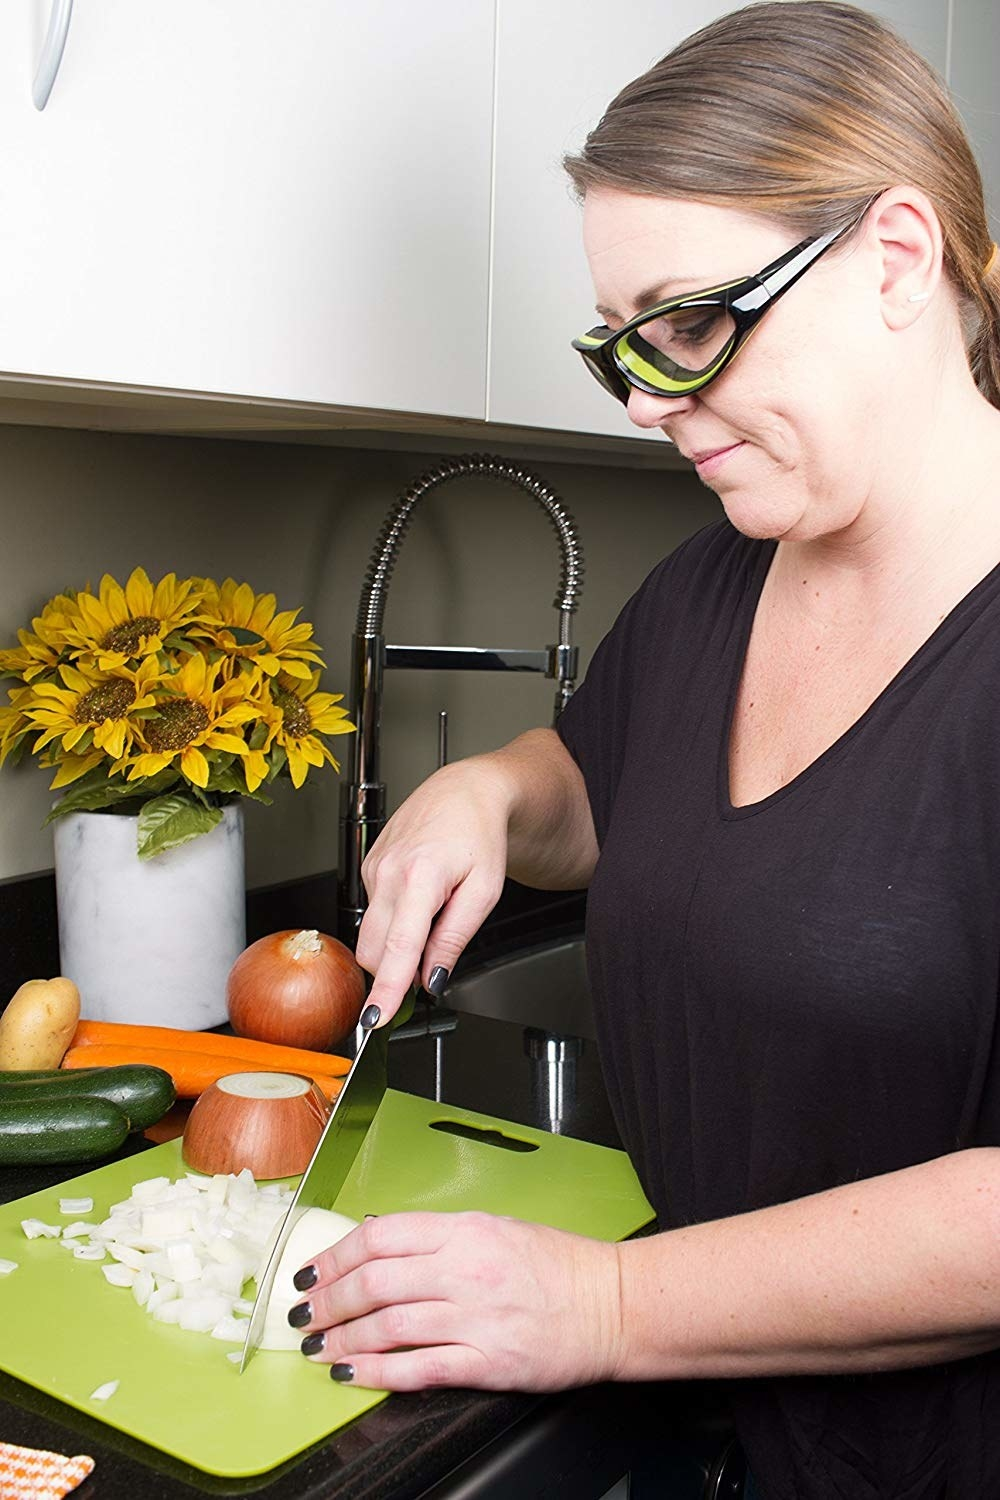 Model wearing the glasses and chopping a white onion